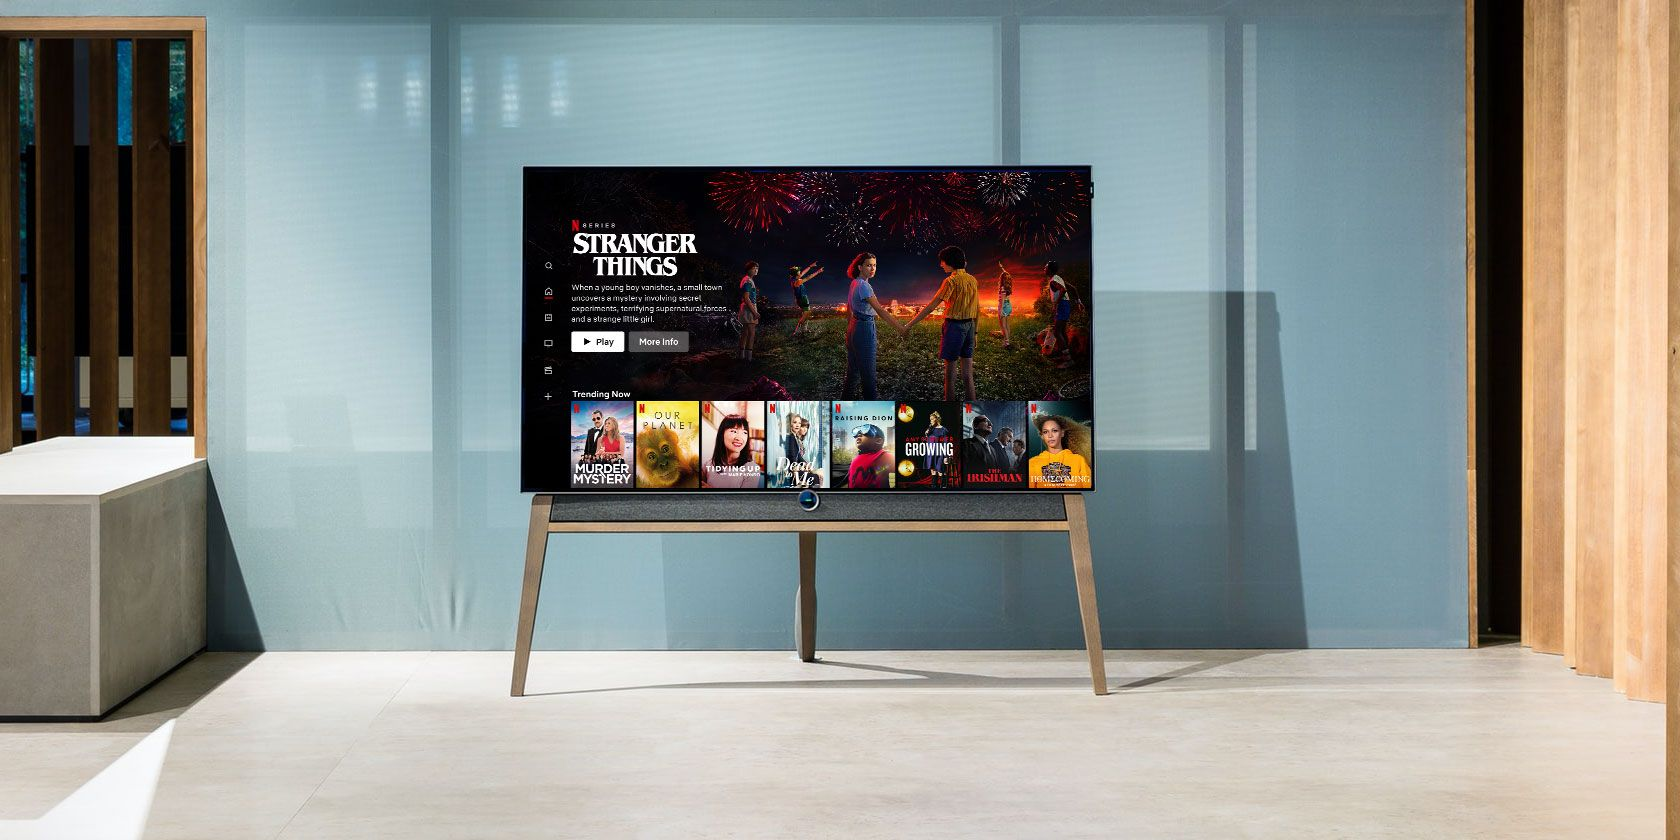 5 Helpful Tools to Find Movies & TV Shows to Watch on Netflix